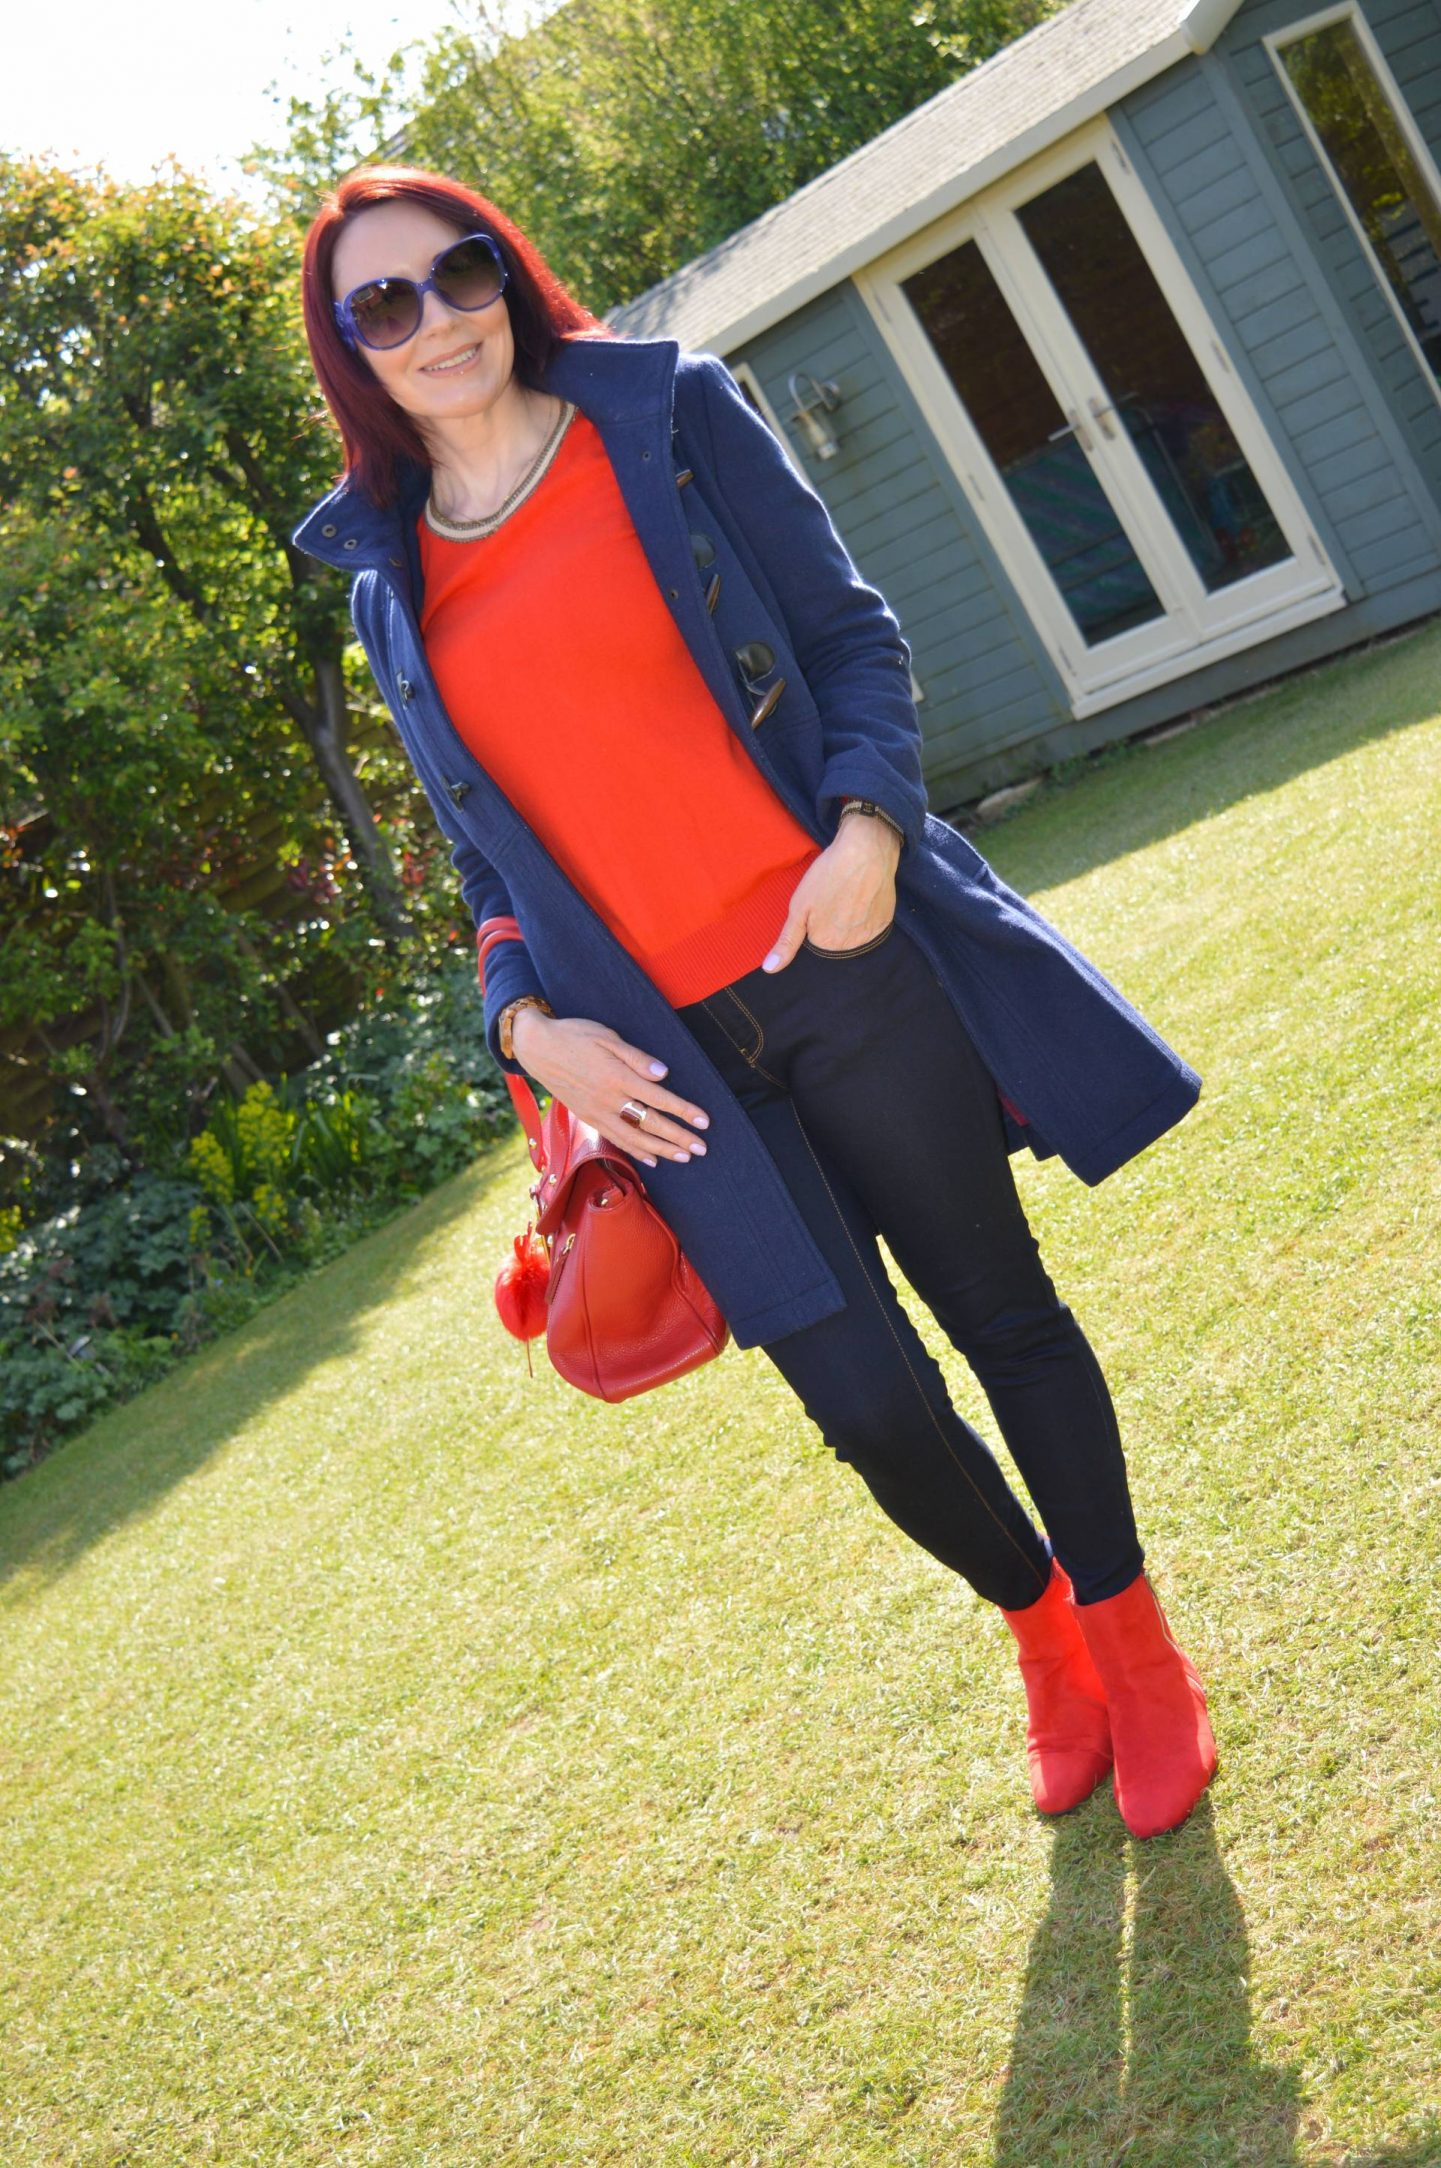 Navy and Bright Red - A Casual Outfit For Work, Scotch & Soda red jumper, Dickins & Jones navy duffle coat